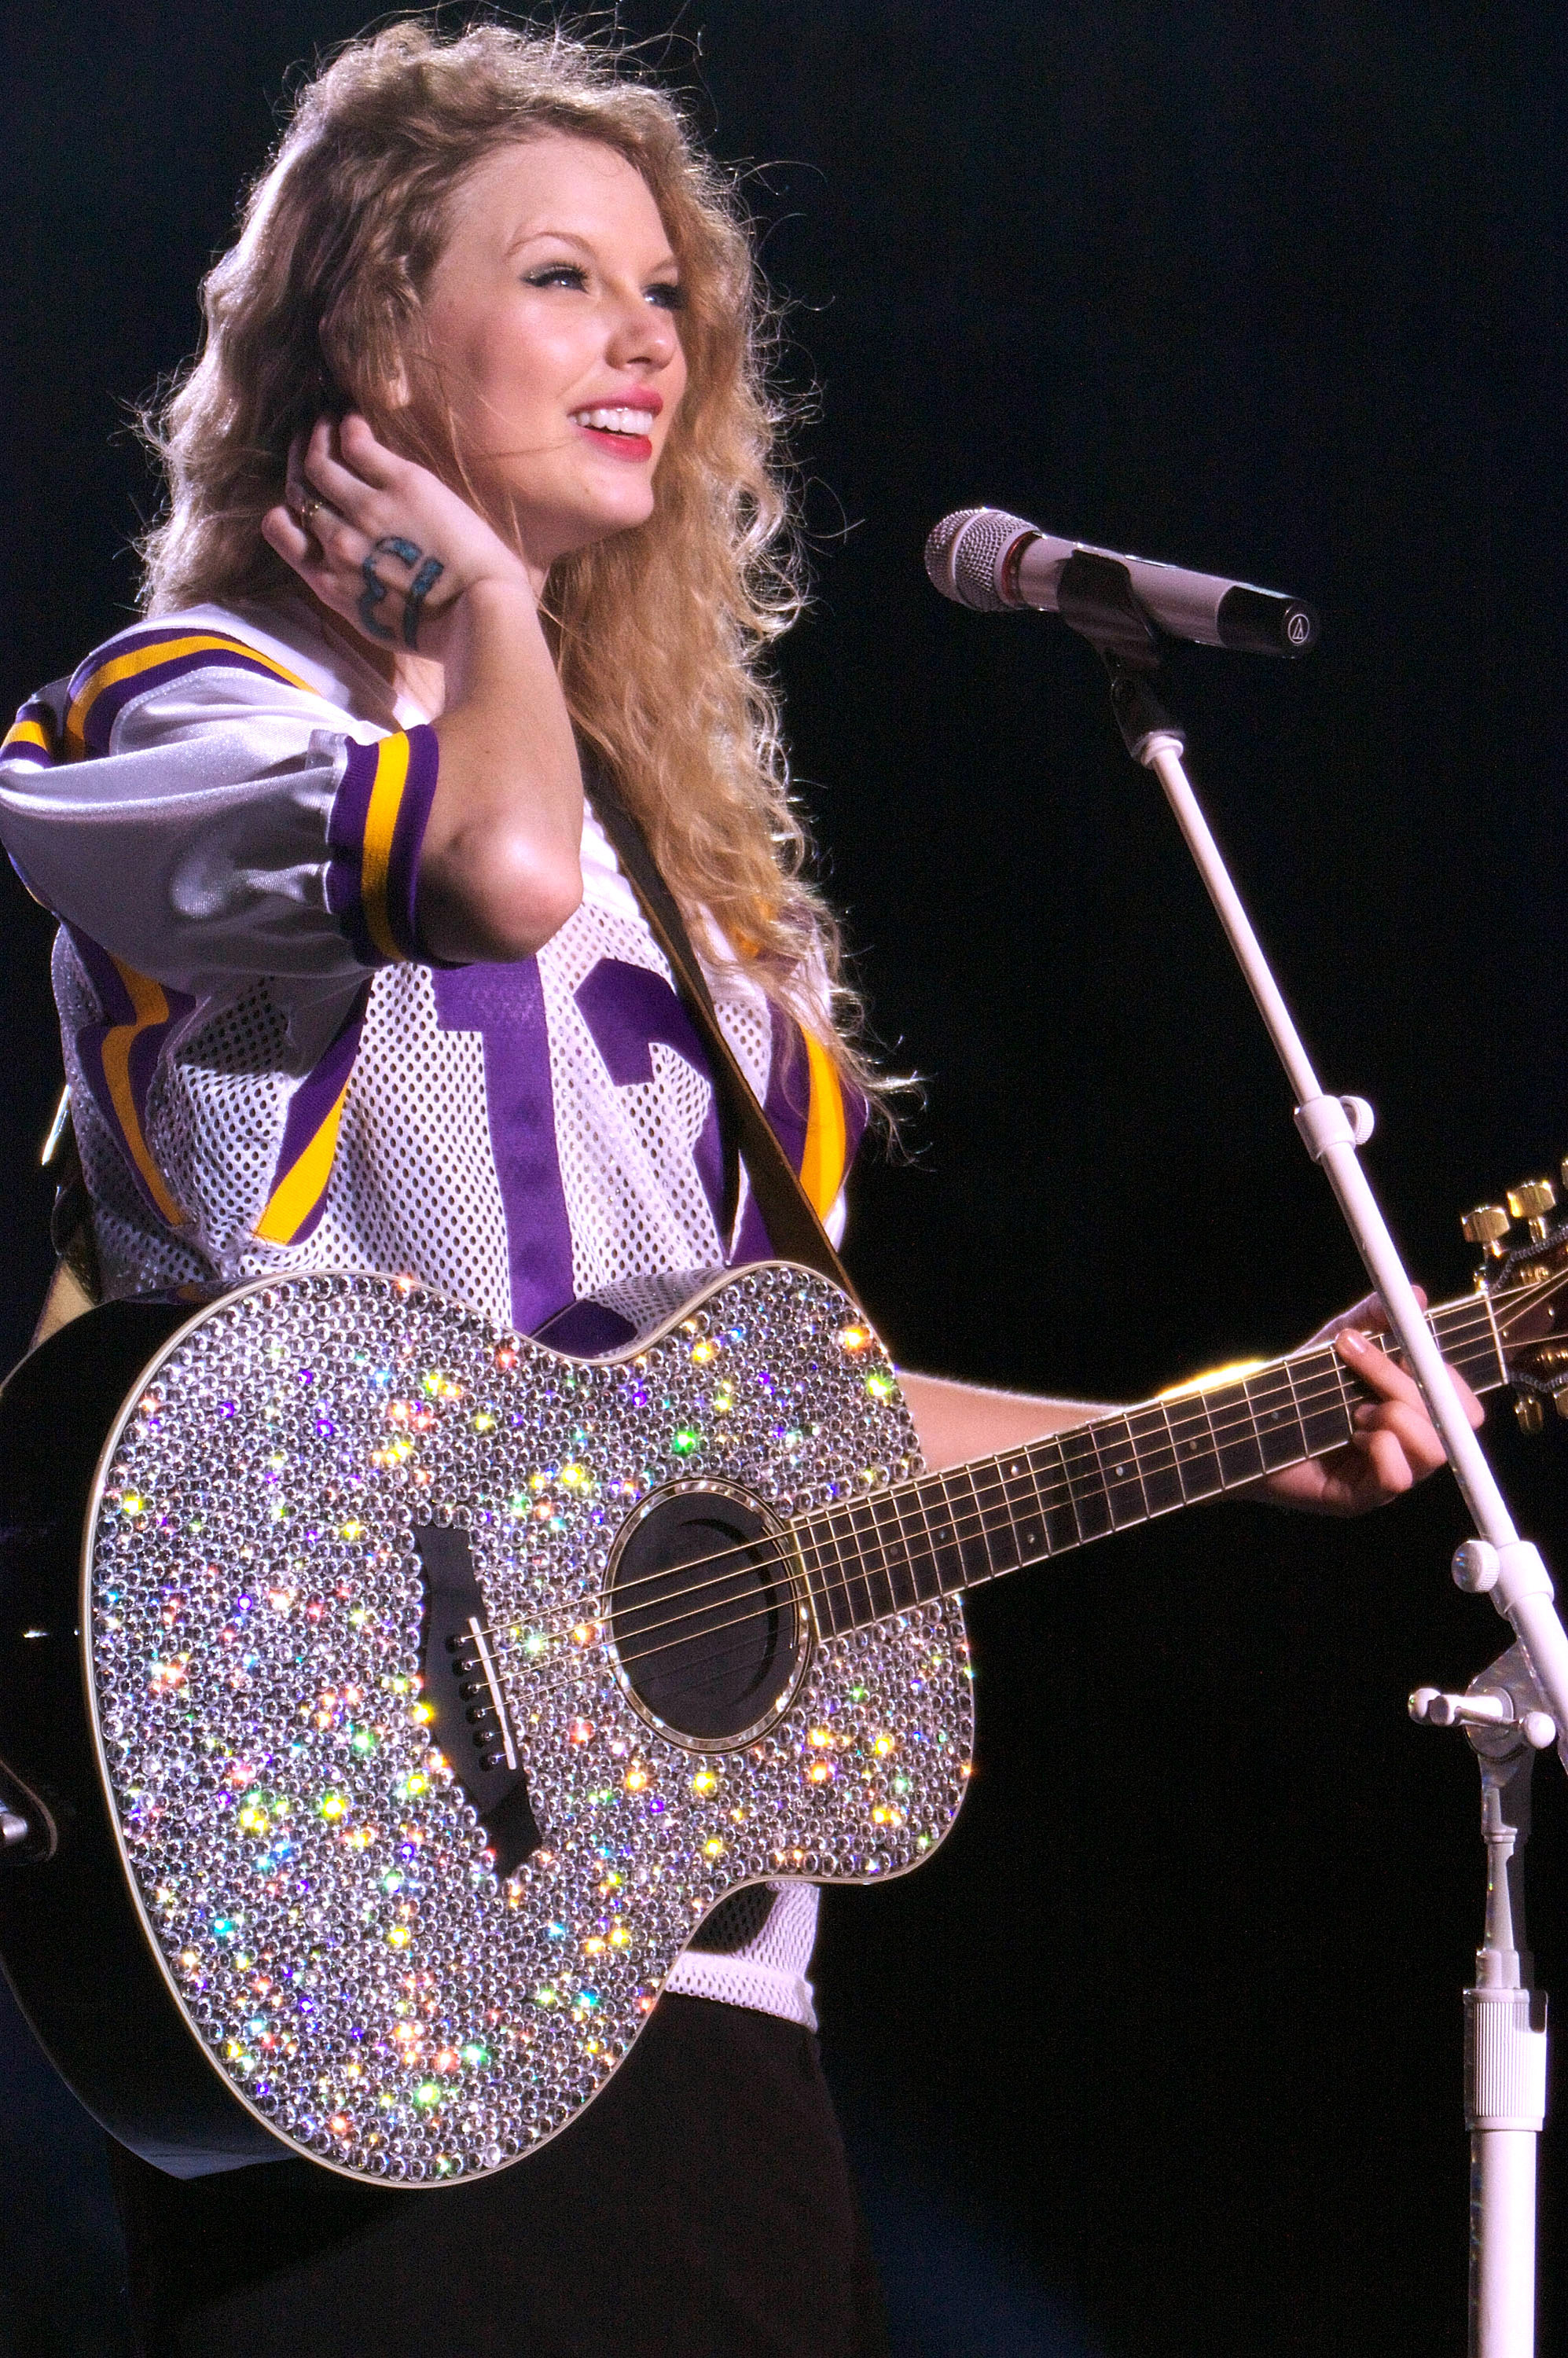 32535_Taylor_swift_performs_her_Fearless_Tour_at_Tiger_Stadium_008_122_185lo.jpg